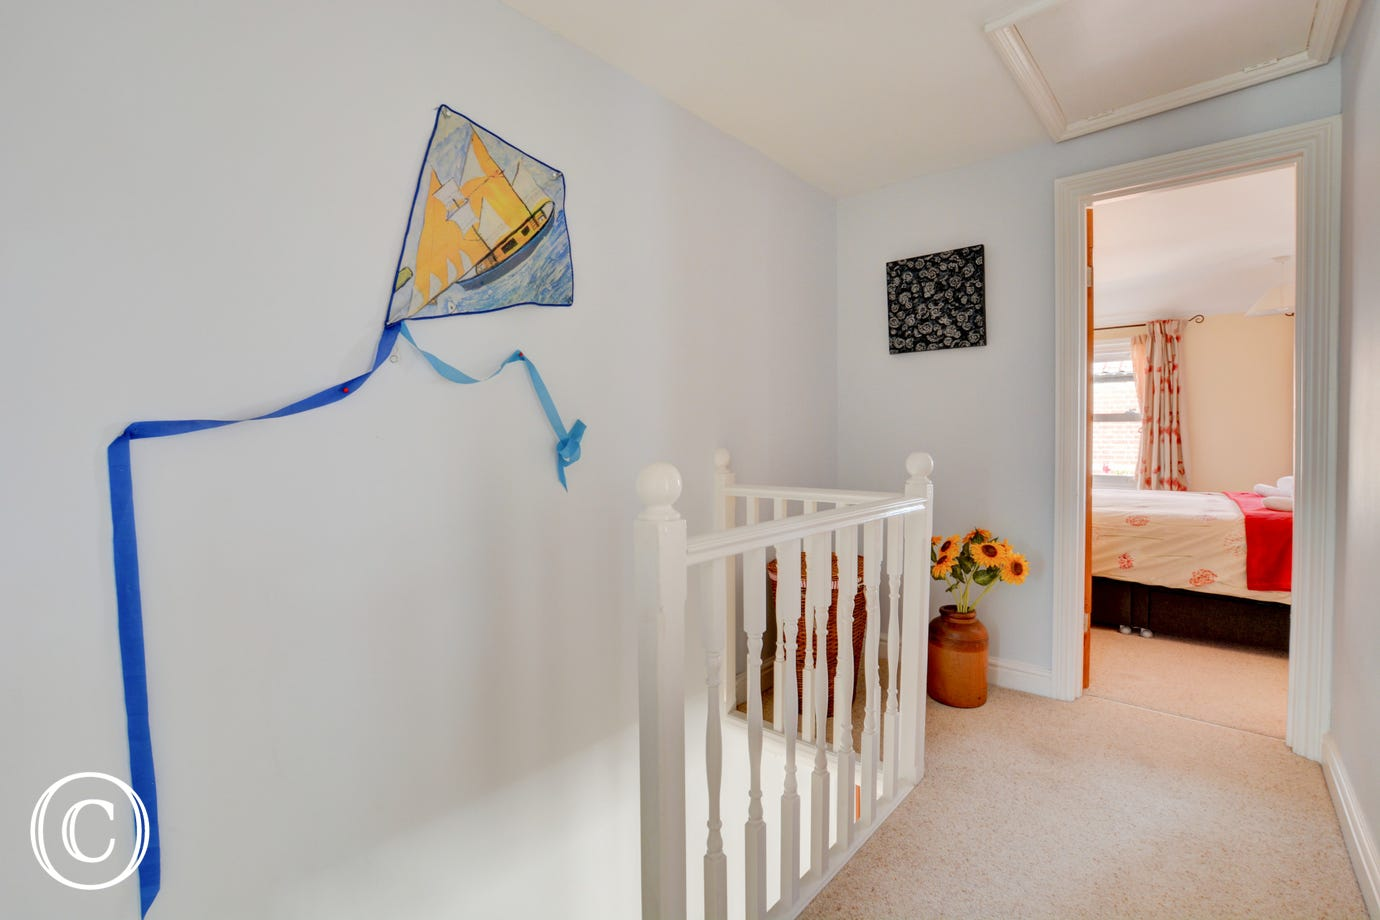 The artwork kite on the wall is quirky and fun.